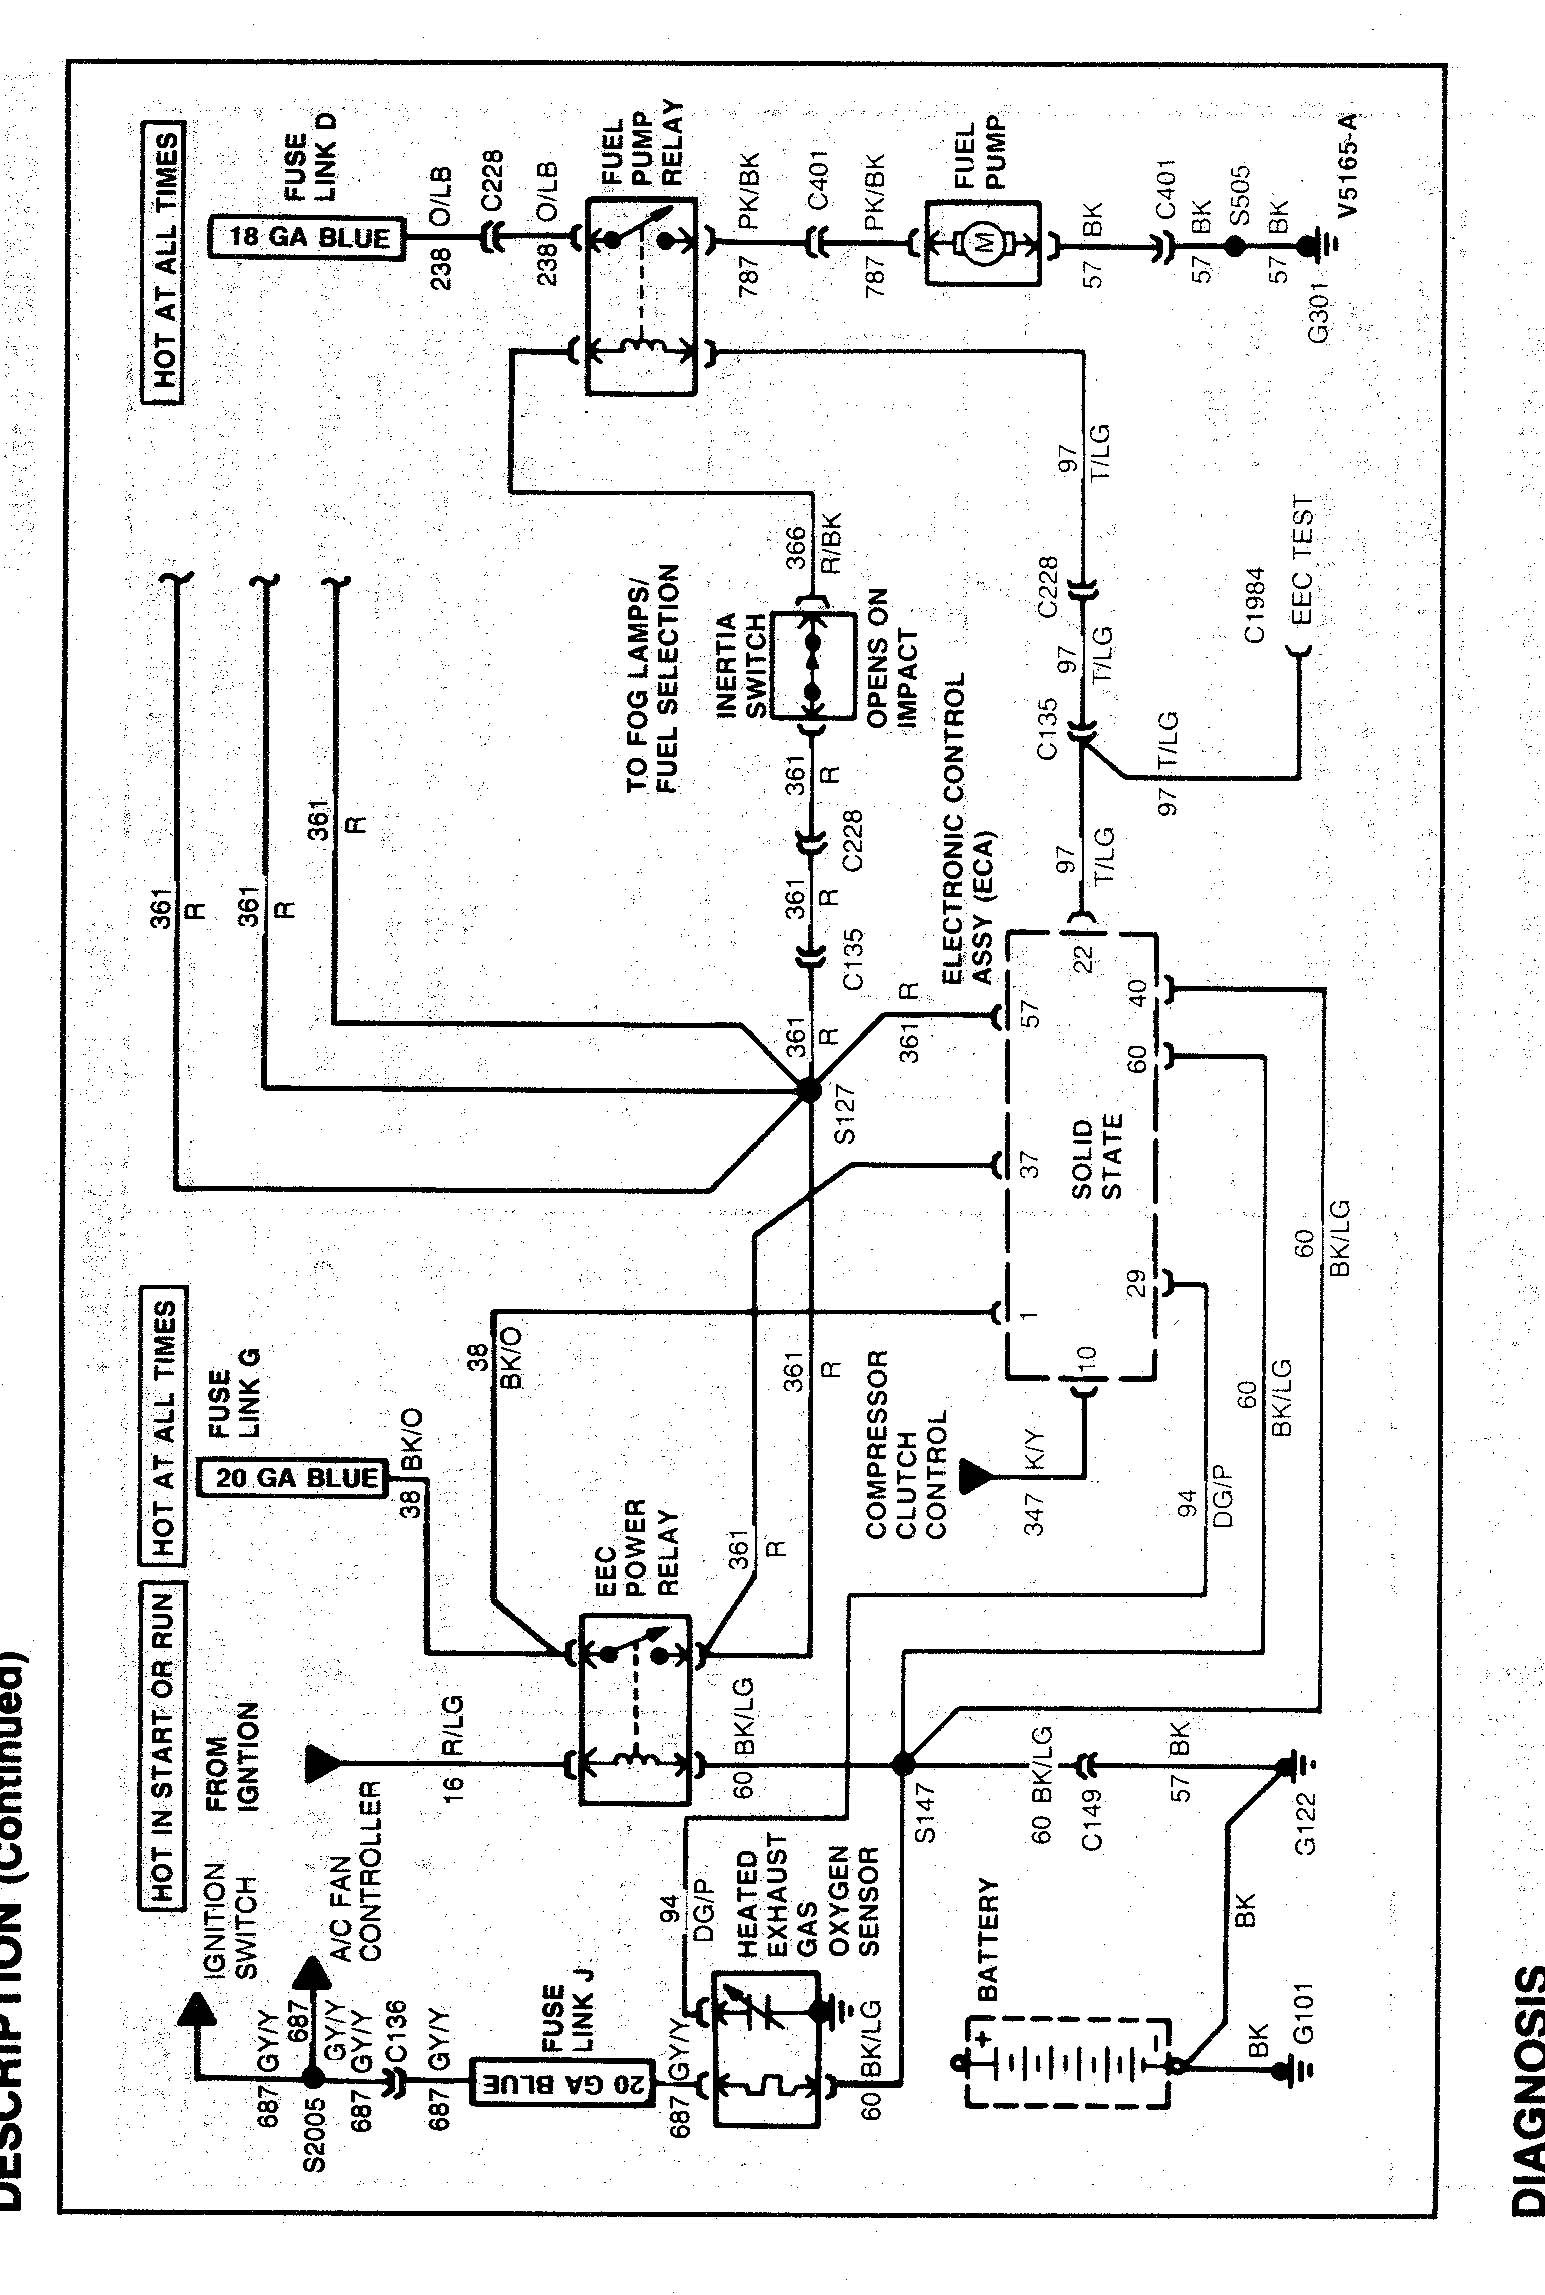 Schematic 2004 Ford Thunderbird Trusted Wiring Diagram Mustang History Fuel Pump